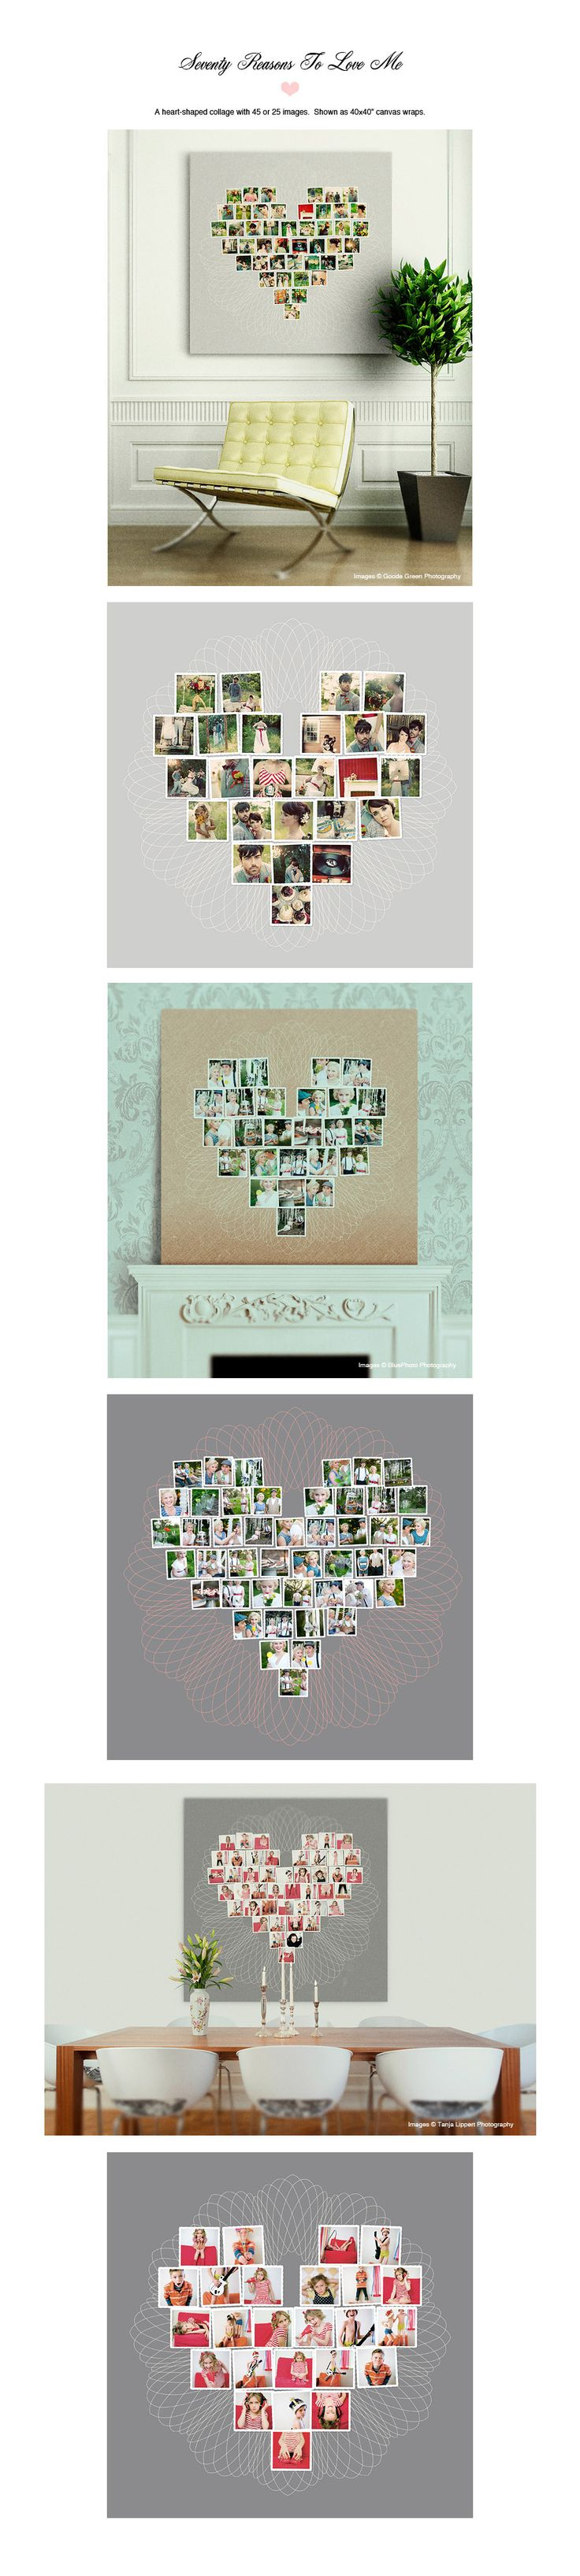 """70 reasons to love me"" design aglow template showing 45 to 25 images."